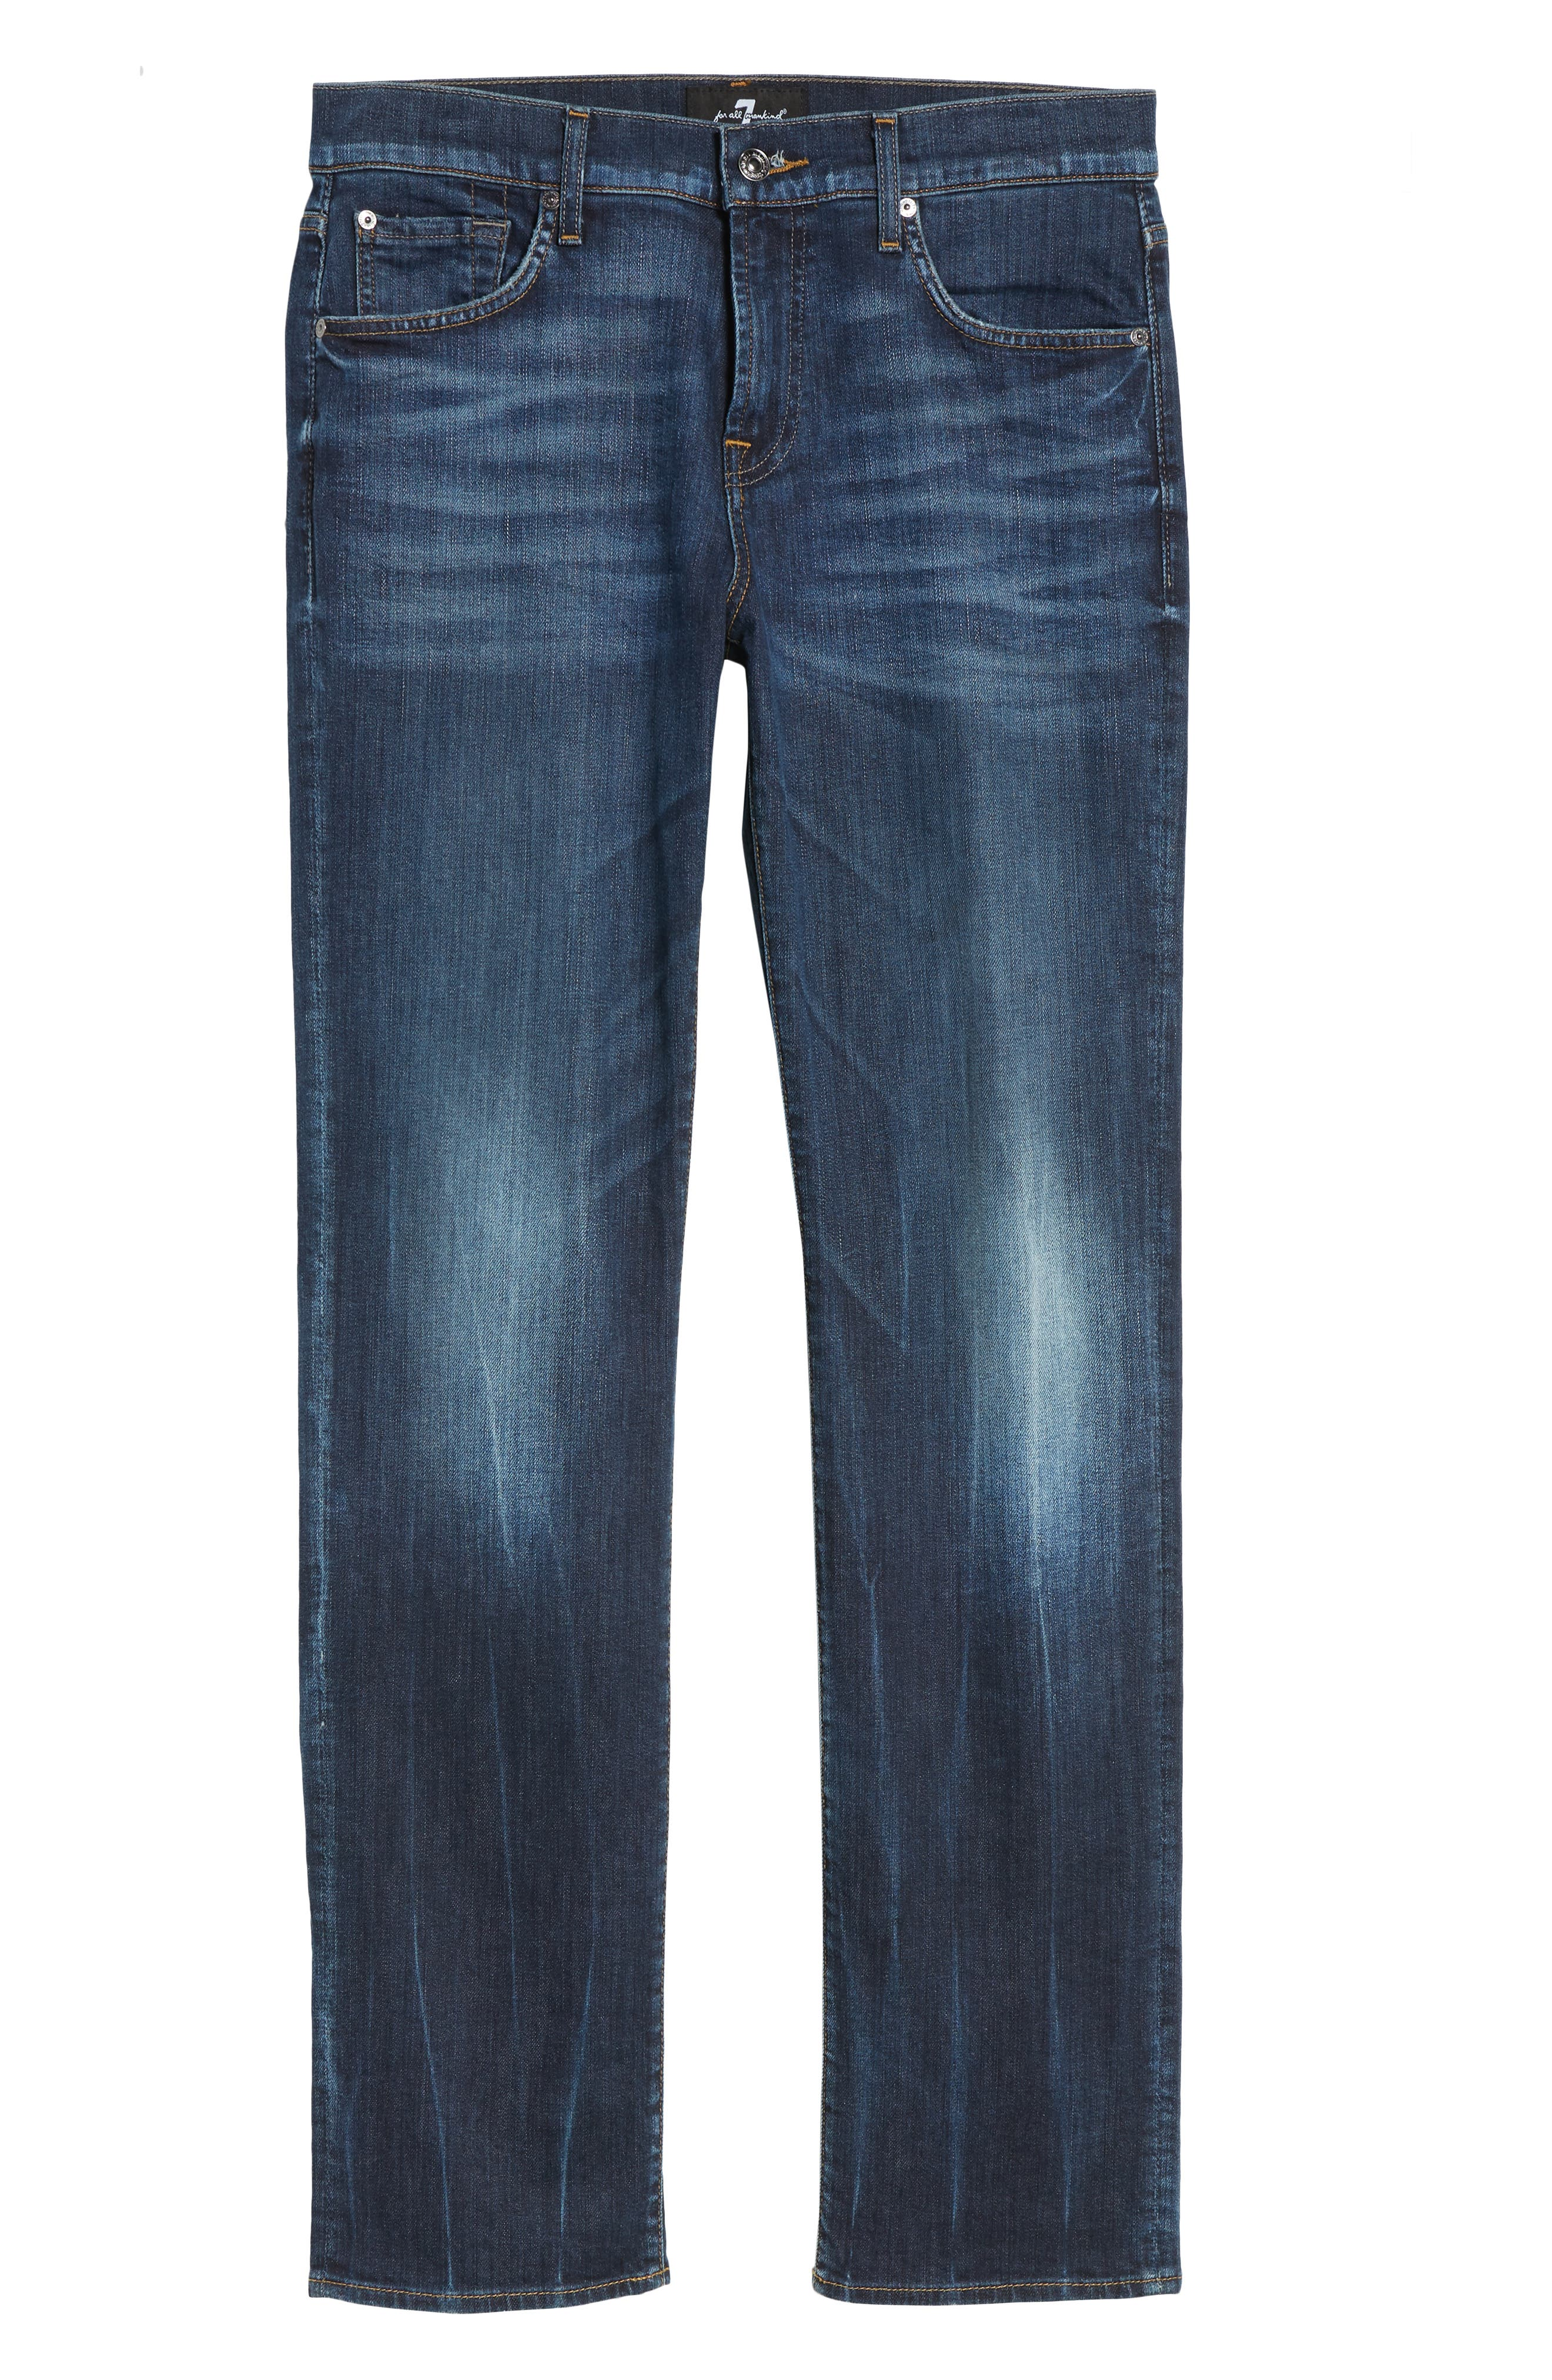 Luxe Standard Straight Leg Jeans,                             Alternate thumbnail 6, color,                             DESPERADO